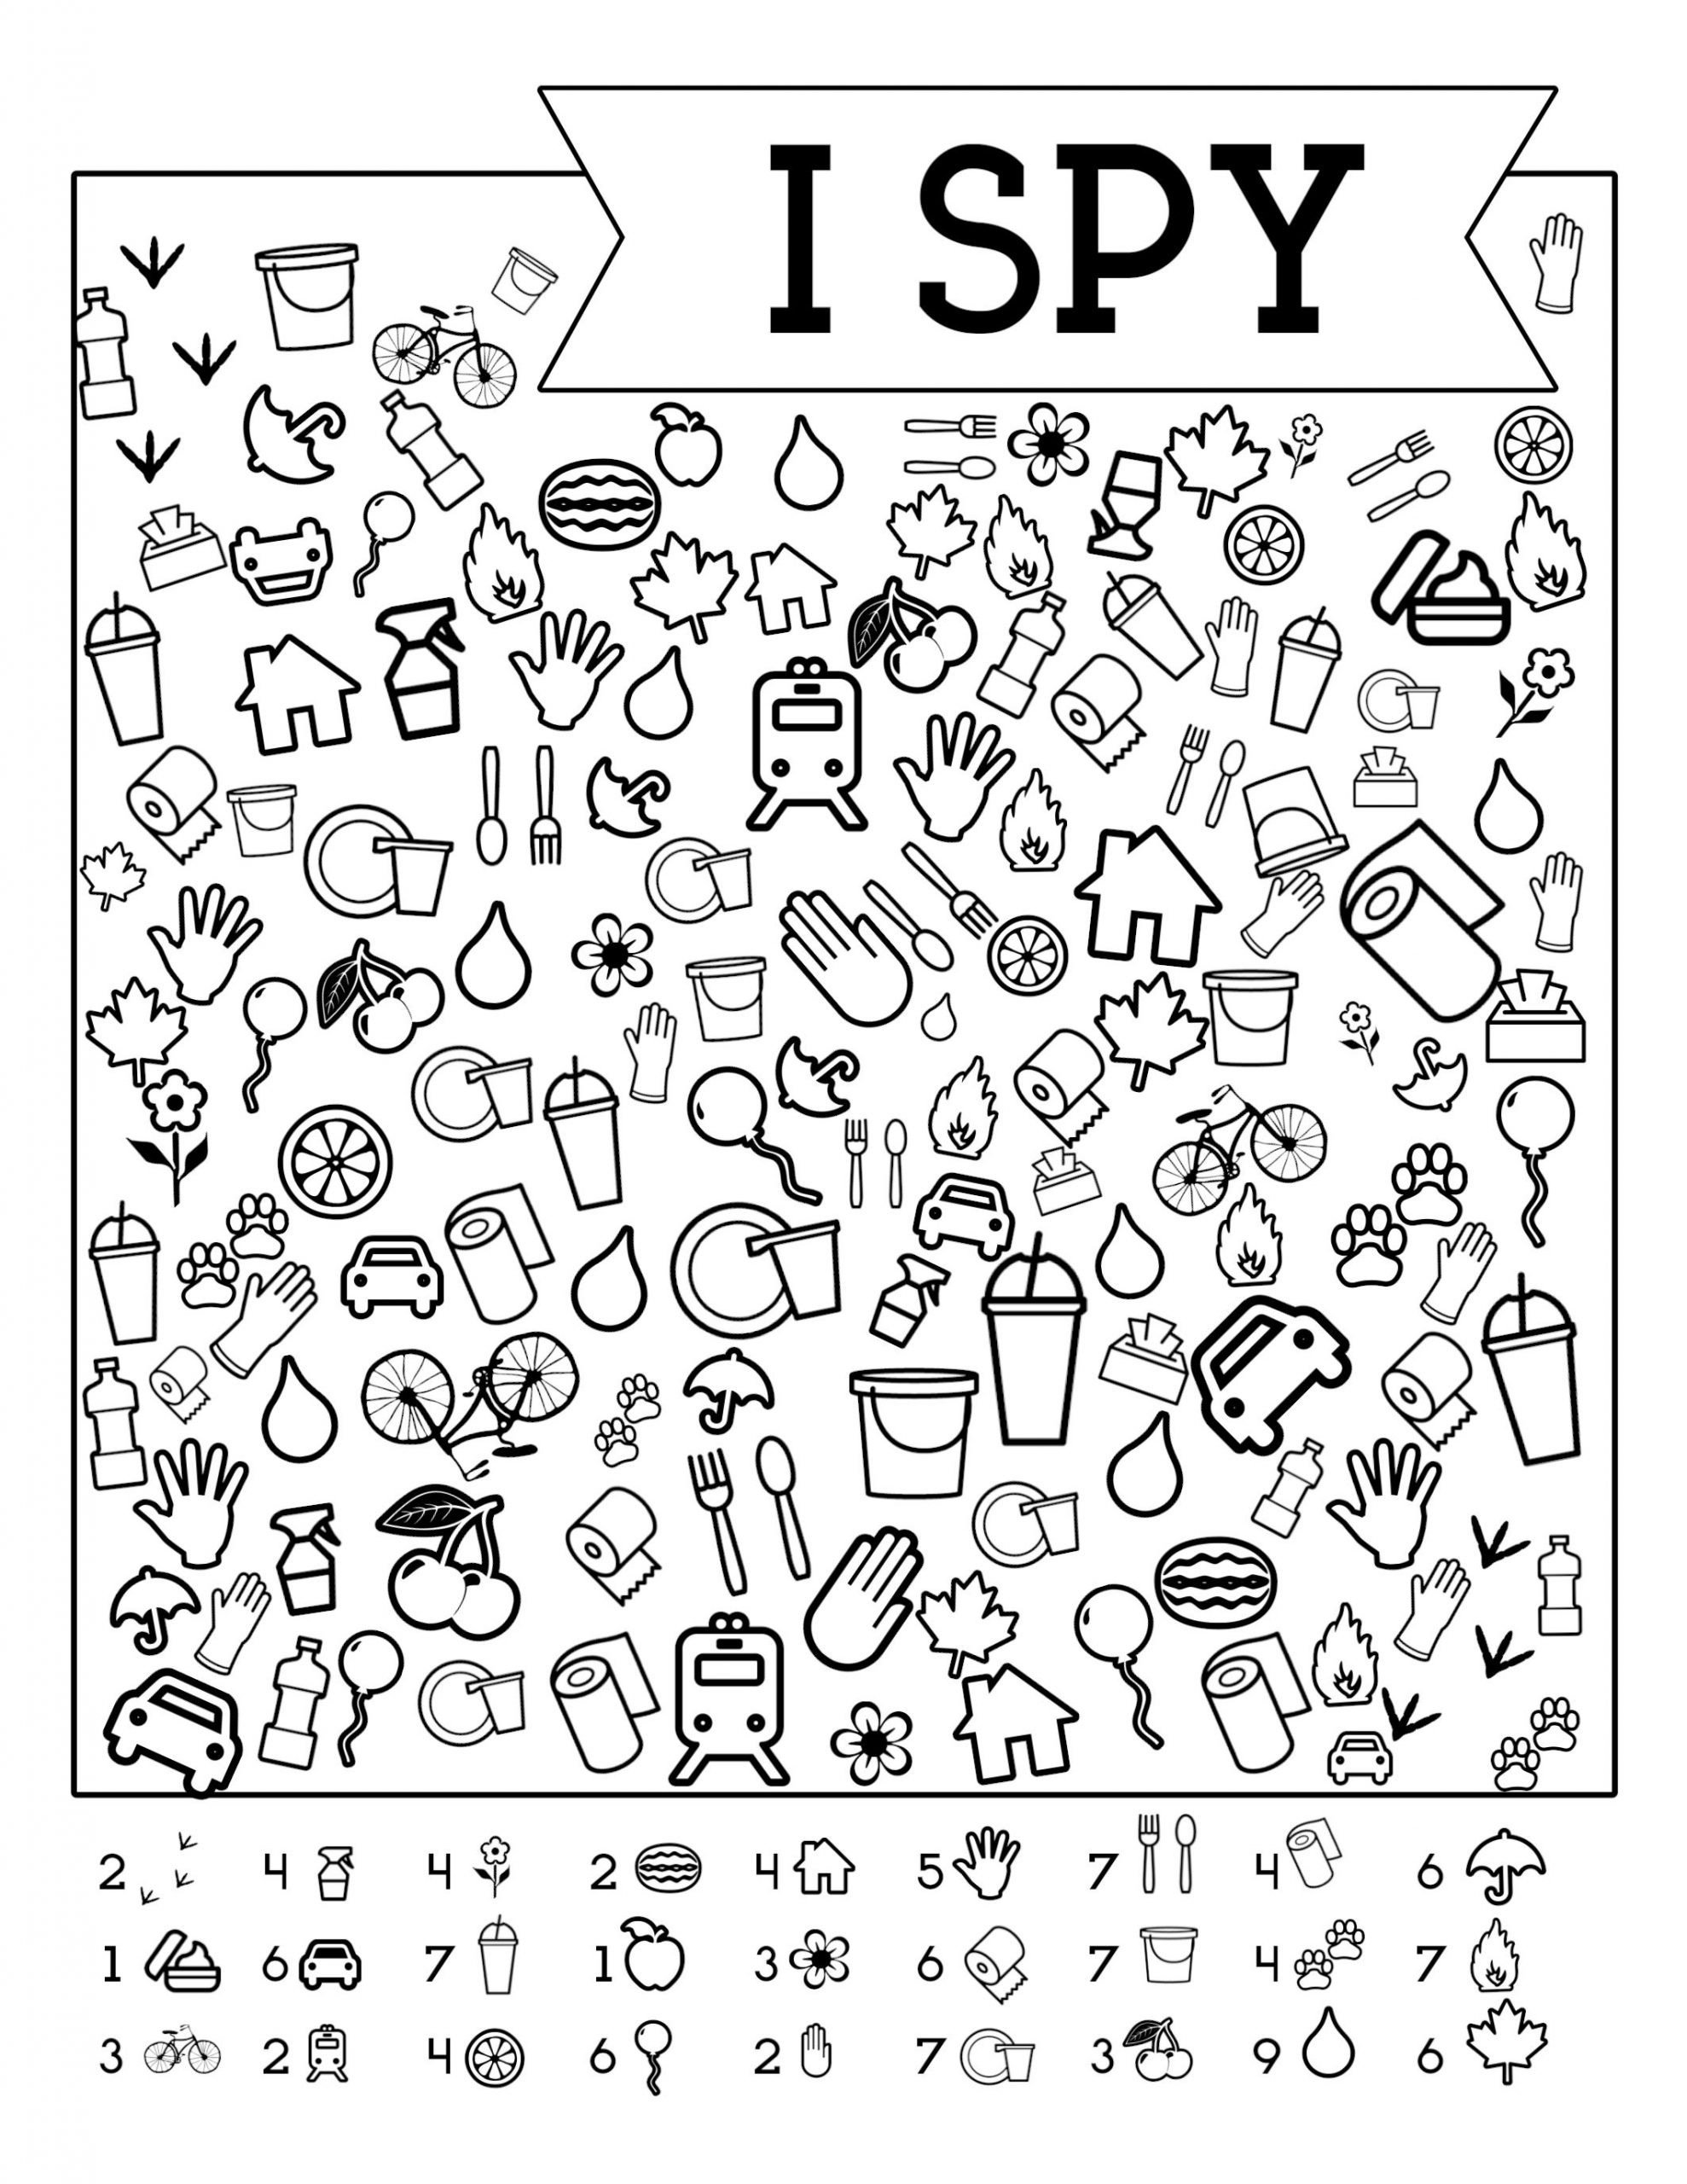 fun coloring for 6th graders pemdas worksheets 5th grade worksheet ideas the rainforest